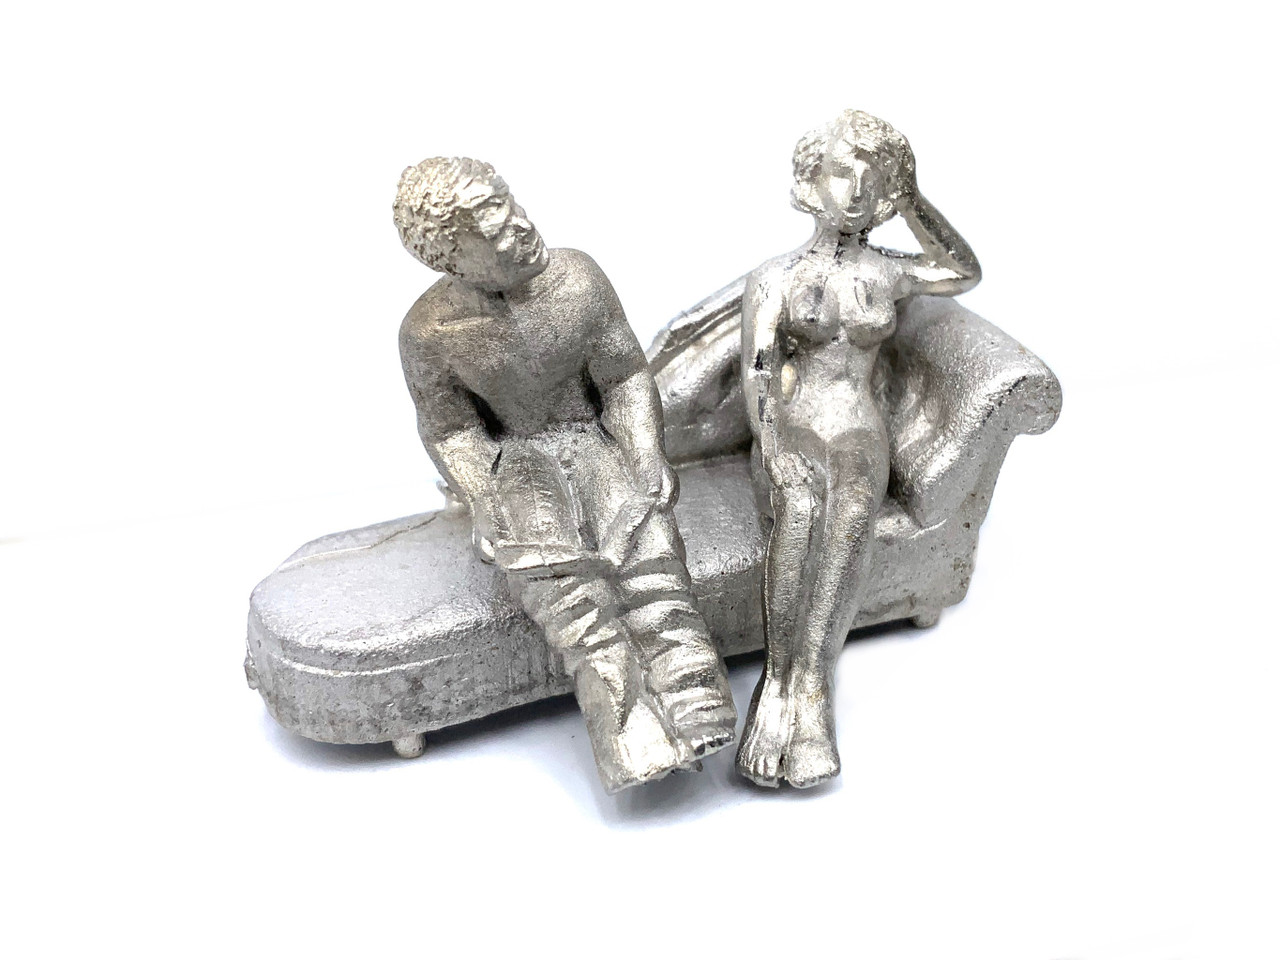 48-1282 Nude woman sitting on chaise lounge with man brothel O Scale Figure FKA Keil Line unpainted